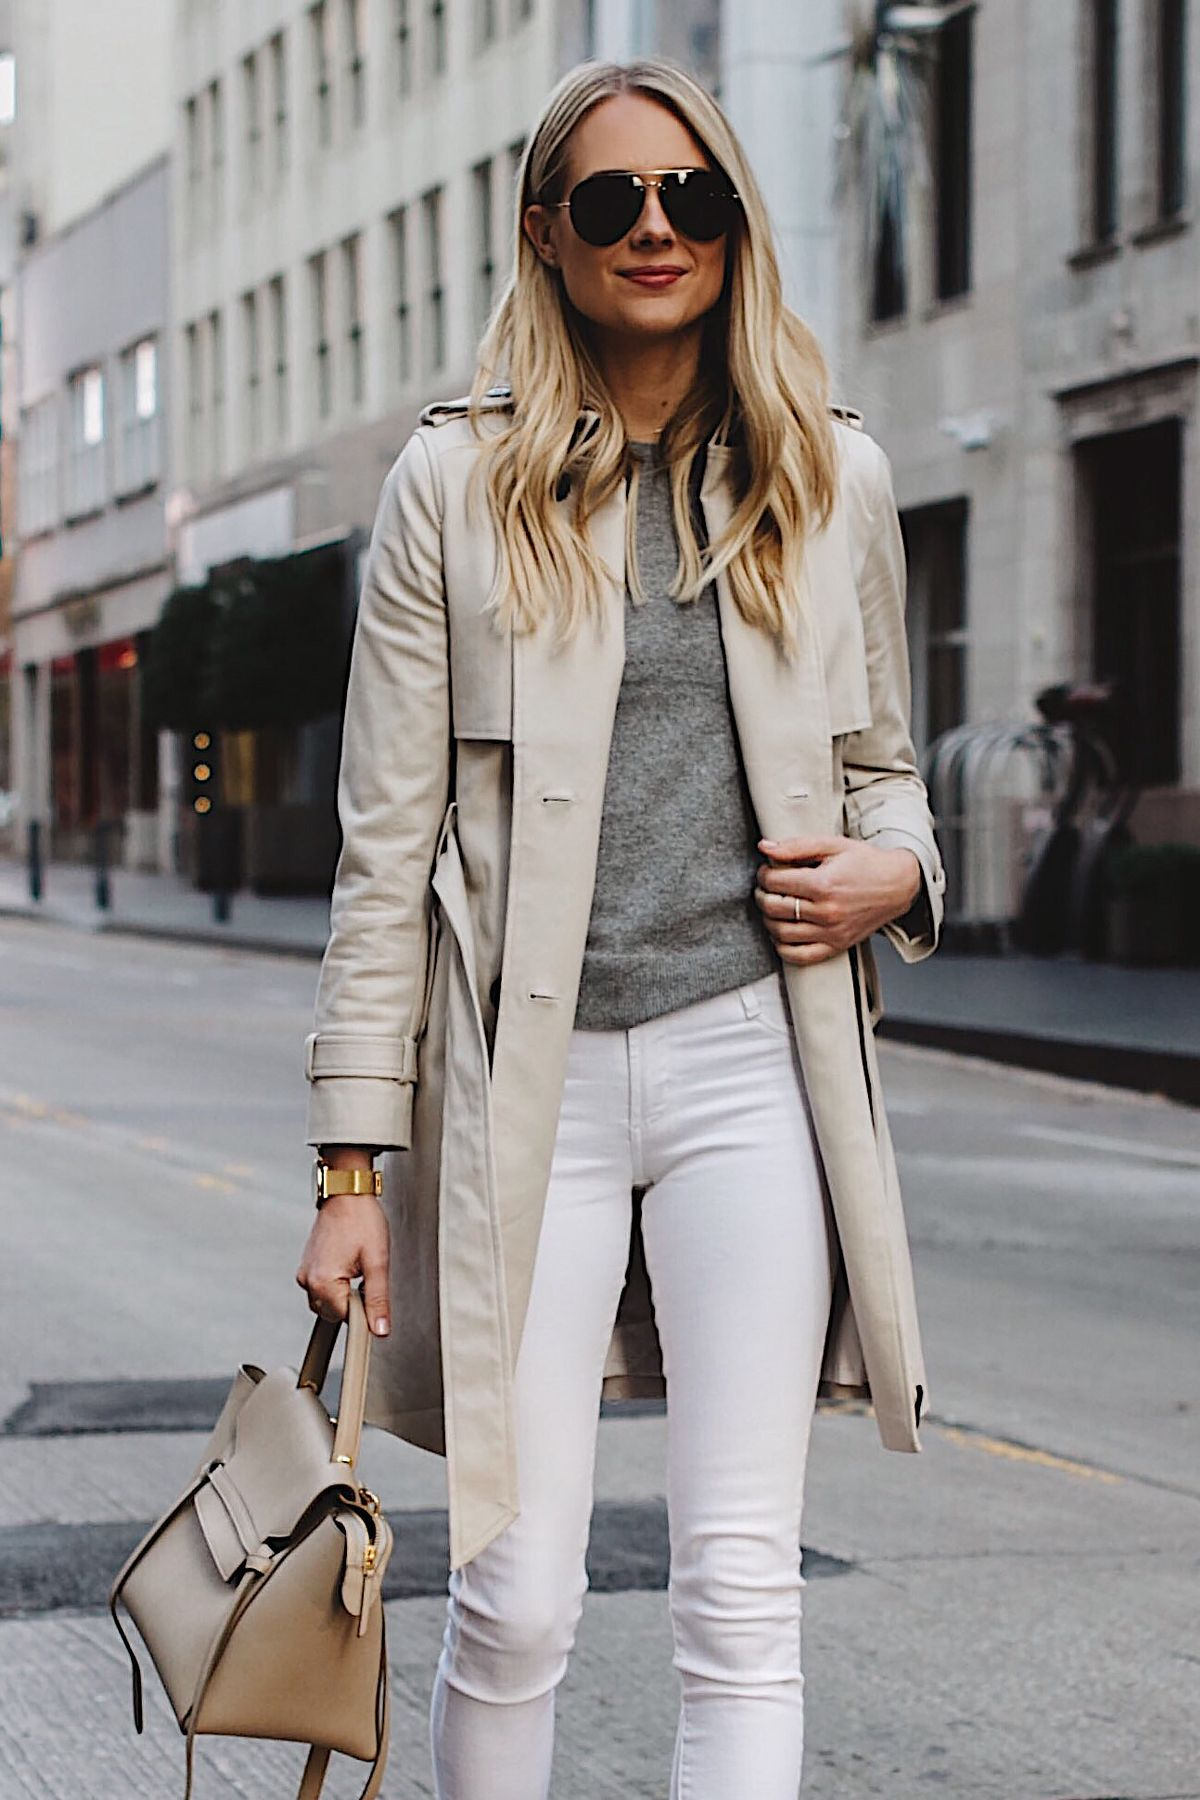 b63a8336c8 Blonde Woman Wearing Club Monaco Trench Coat Grey Sweater White Skinny  Jeans Celine Belt Bag Aviator Sunglasses Fashion Jackson Dallas Blogger  Fashion ...